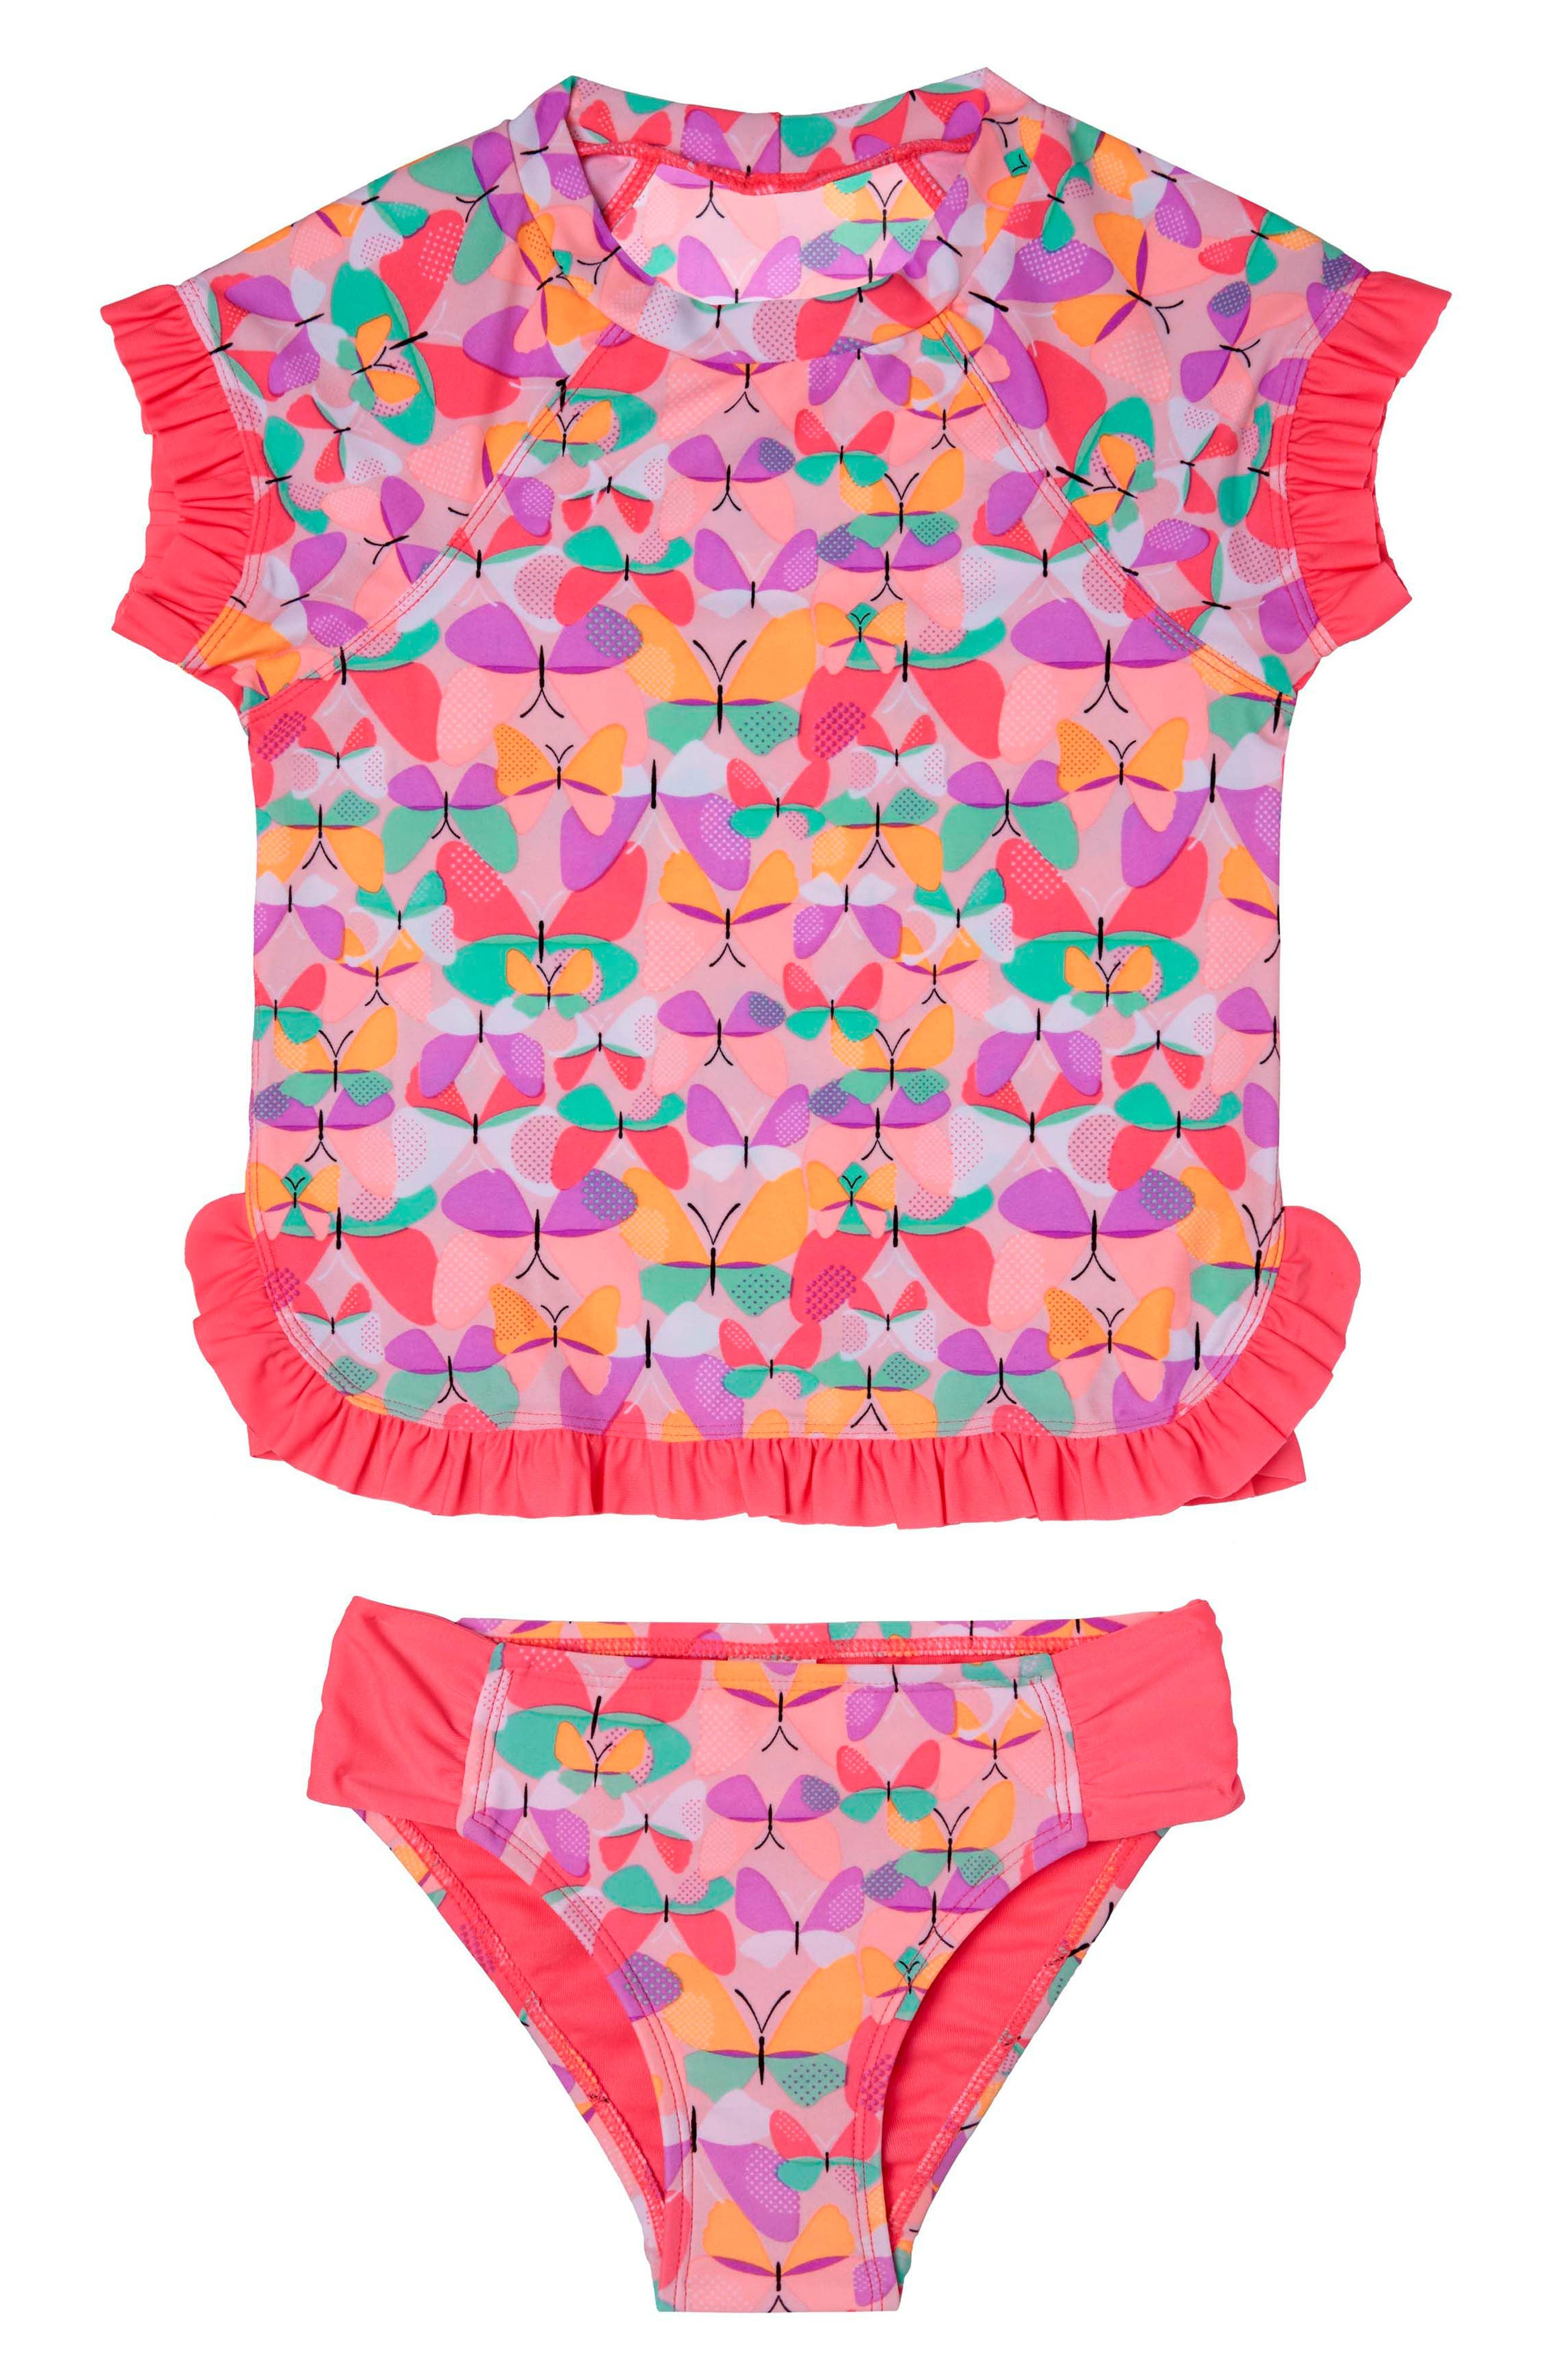 Main Image - Hula Star Butterfly Cutie Two-Piece Rashguard Swimsuit (Toddler Girls & Little Girls)